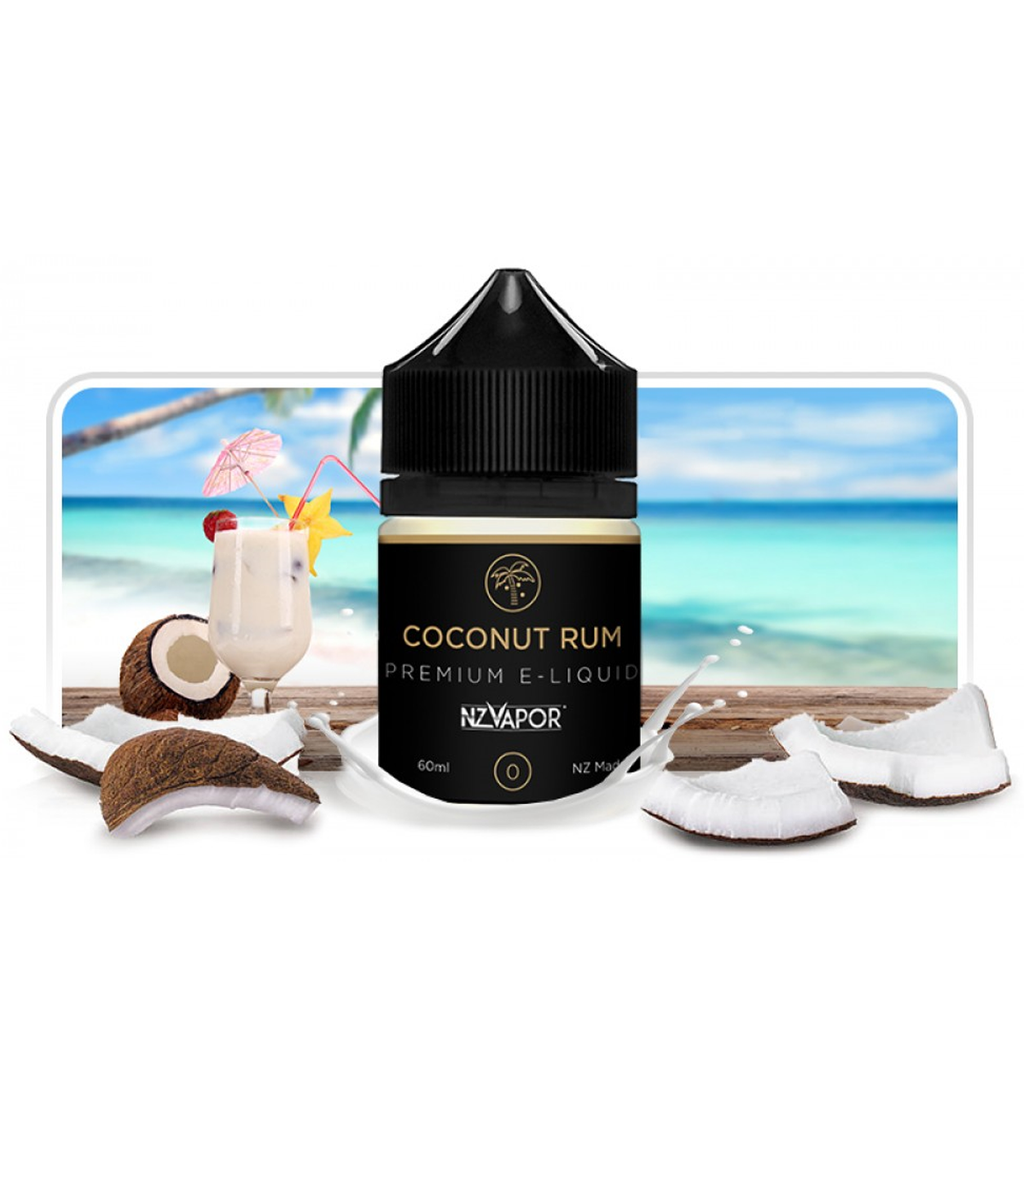 Coconut Rum E-Liquid 60ml-Purplevibe